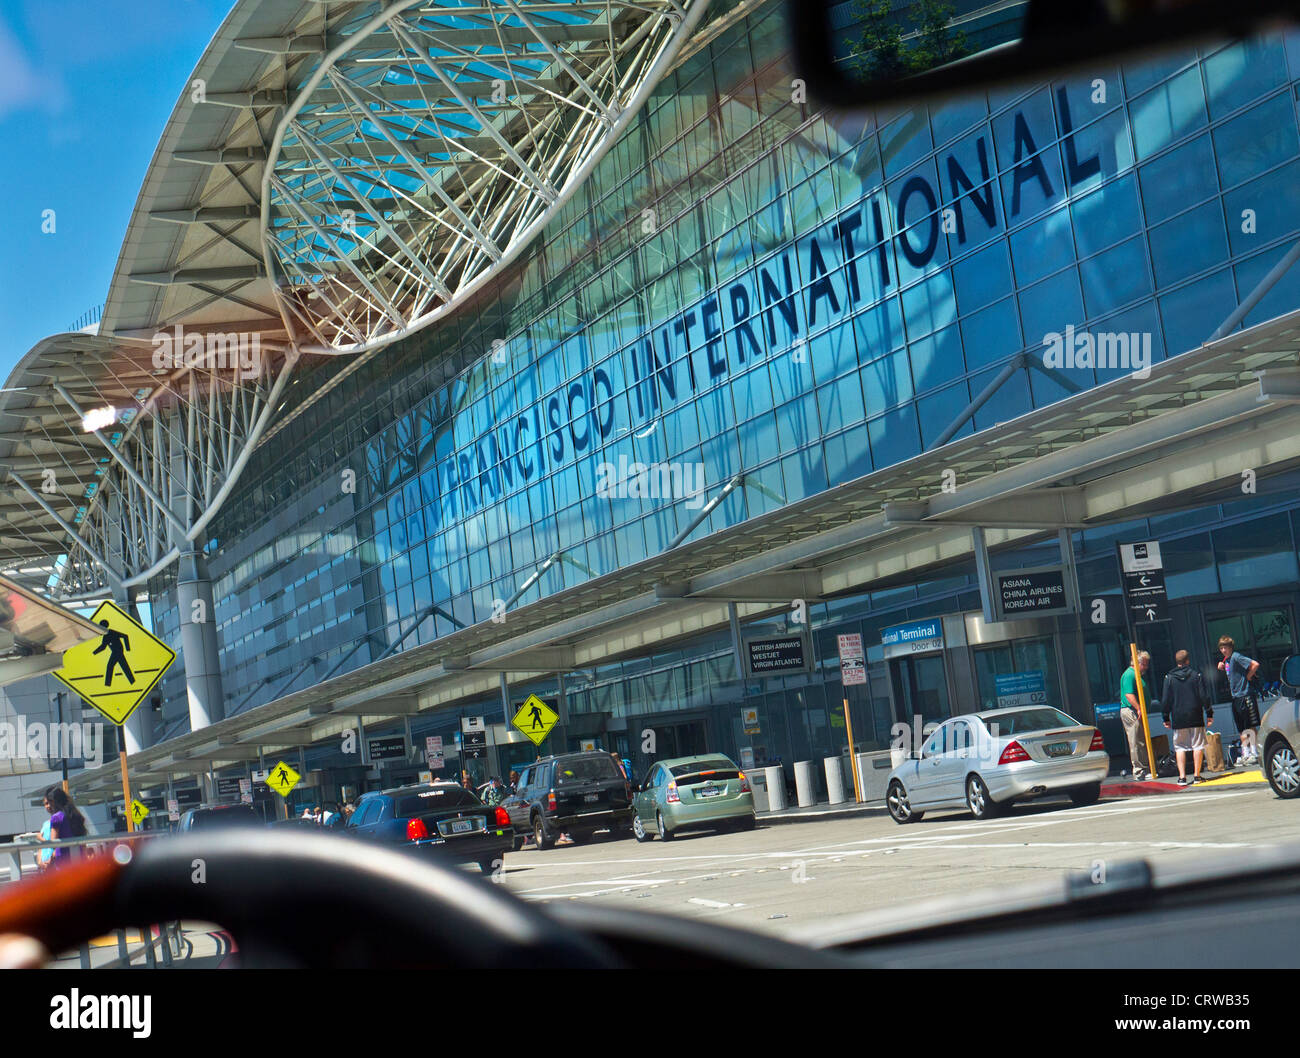 Limousine arriving at San Francisco departures terminal from car interior viewpoint San Francisco California USA - Stock Image